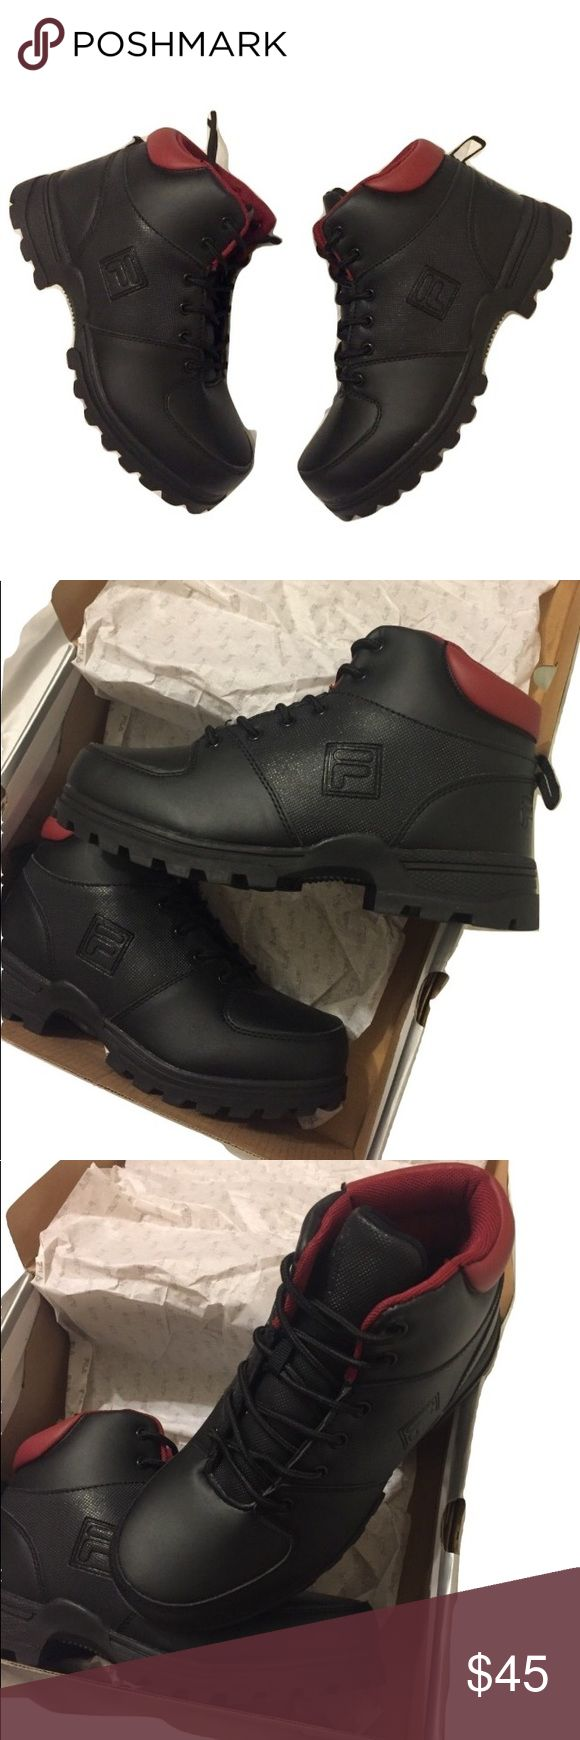 New FILA Boys Hiking Boots Ascender 2 size: 6 FILA Boys Hiking Boots  Style: Ascender 2 Size: 6 New in box.  Never even tried on Great as a gift for the holidays. Black with red trim Questions? Please ask prior to purchasing. Fila Shoes Boots